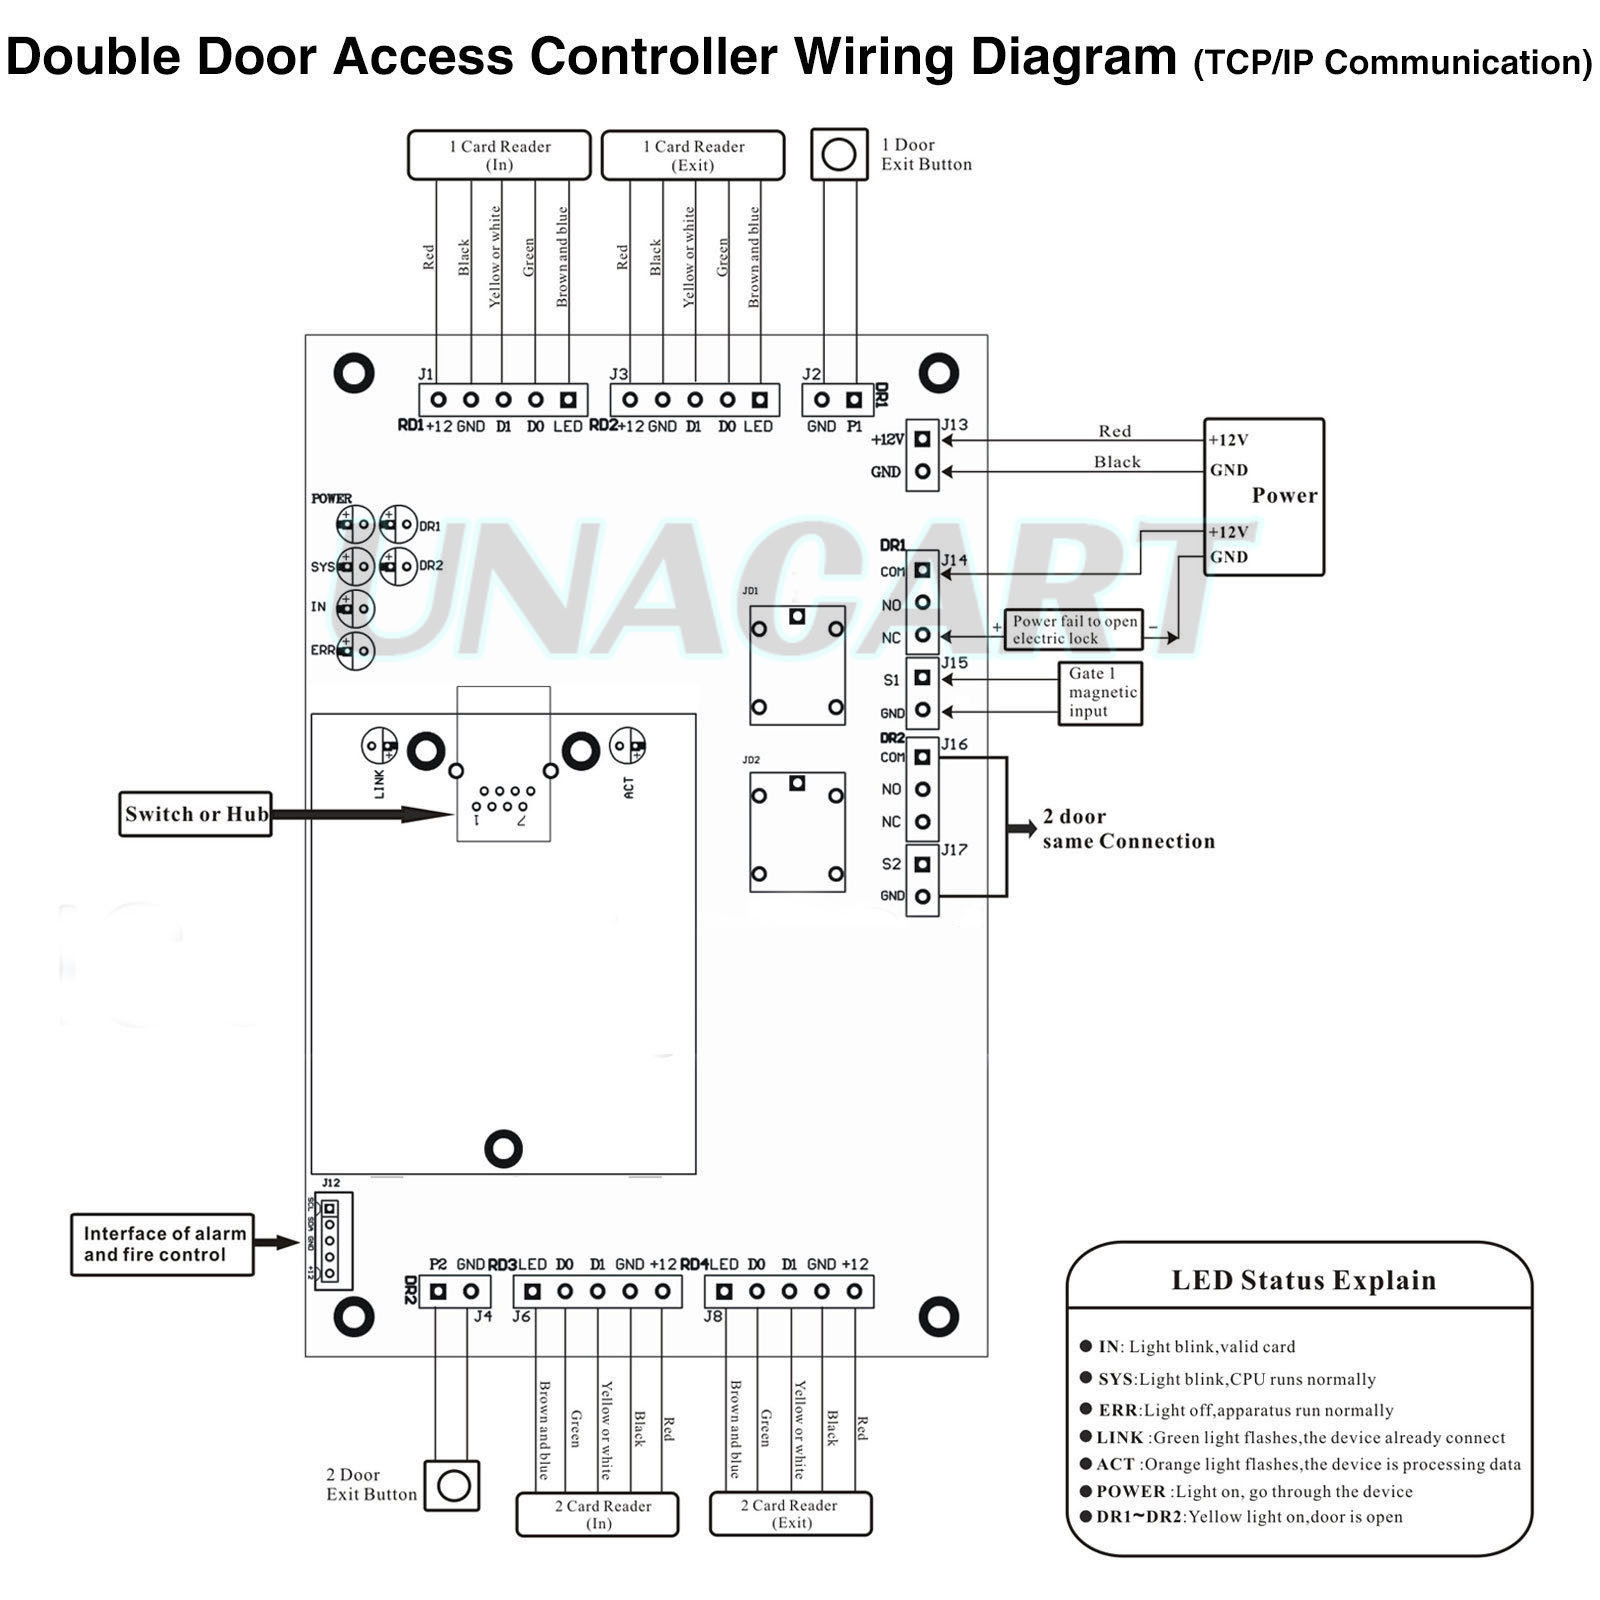 hid rp40 wiring diagram Collection-Tcp ip Network Access Control Board Panel W Reader Exit Button for 4 Door Use 5-q